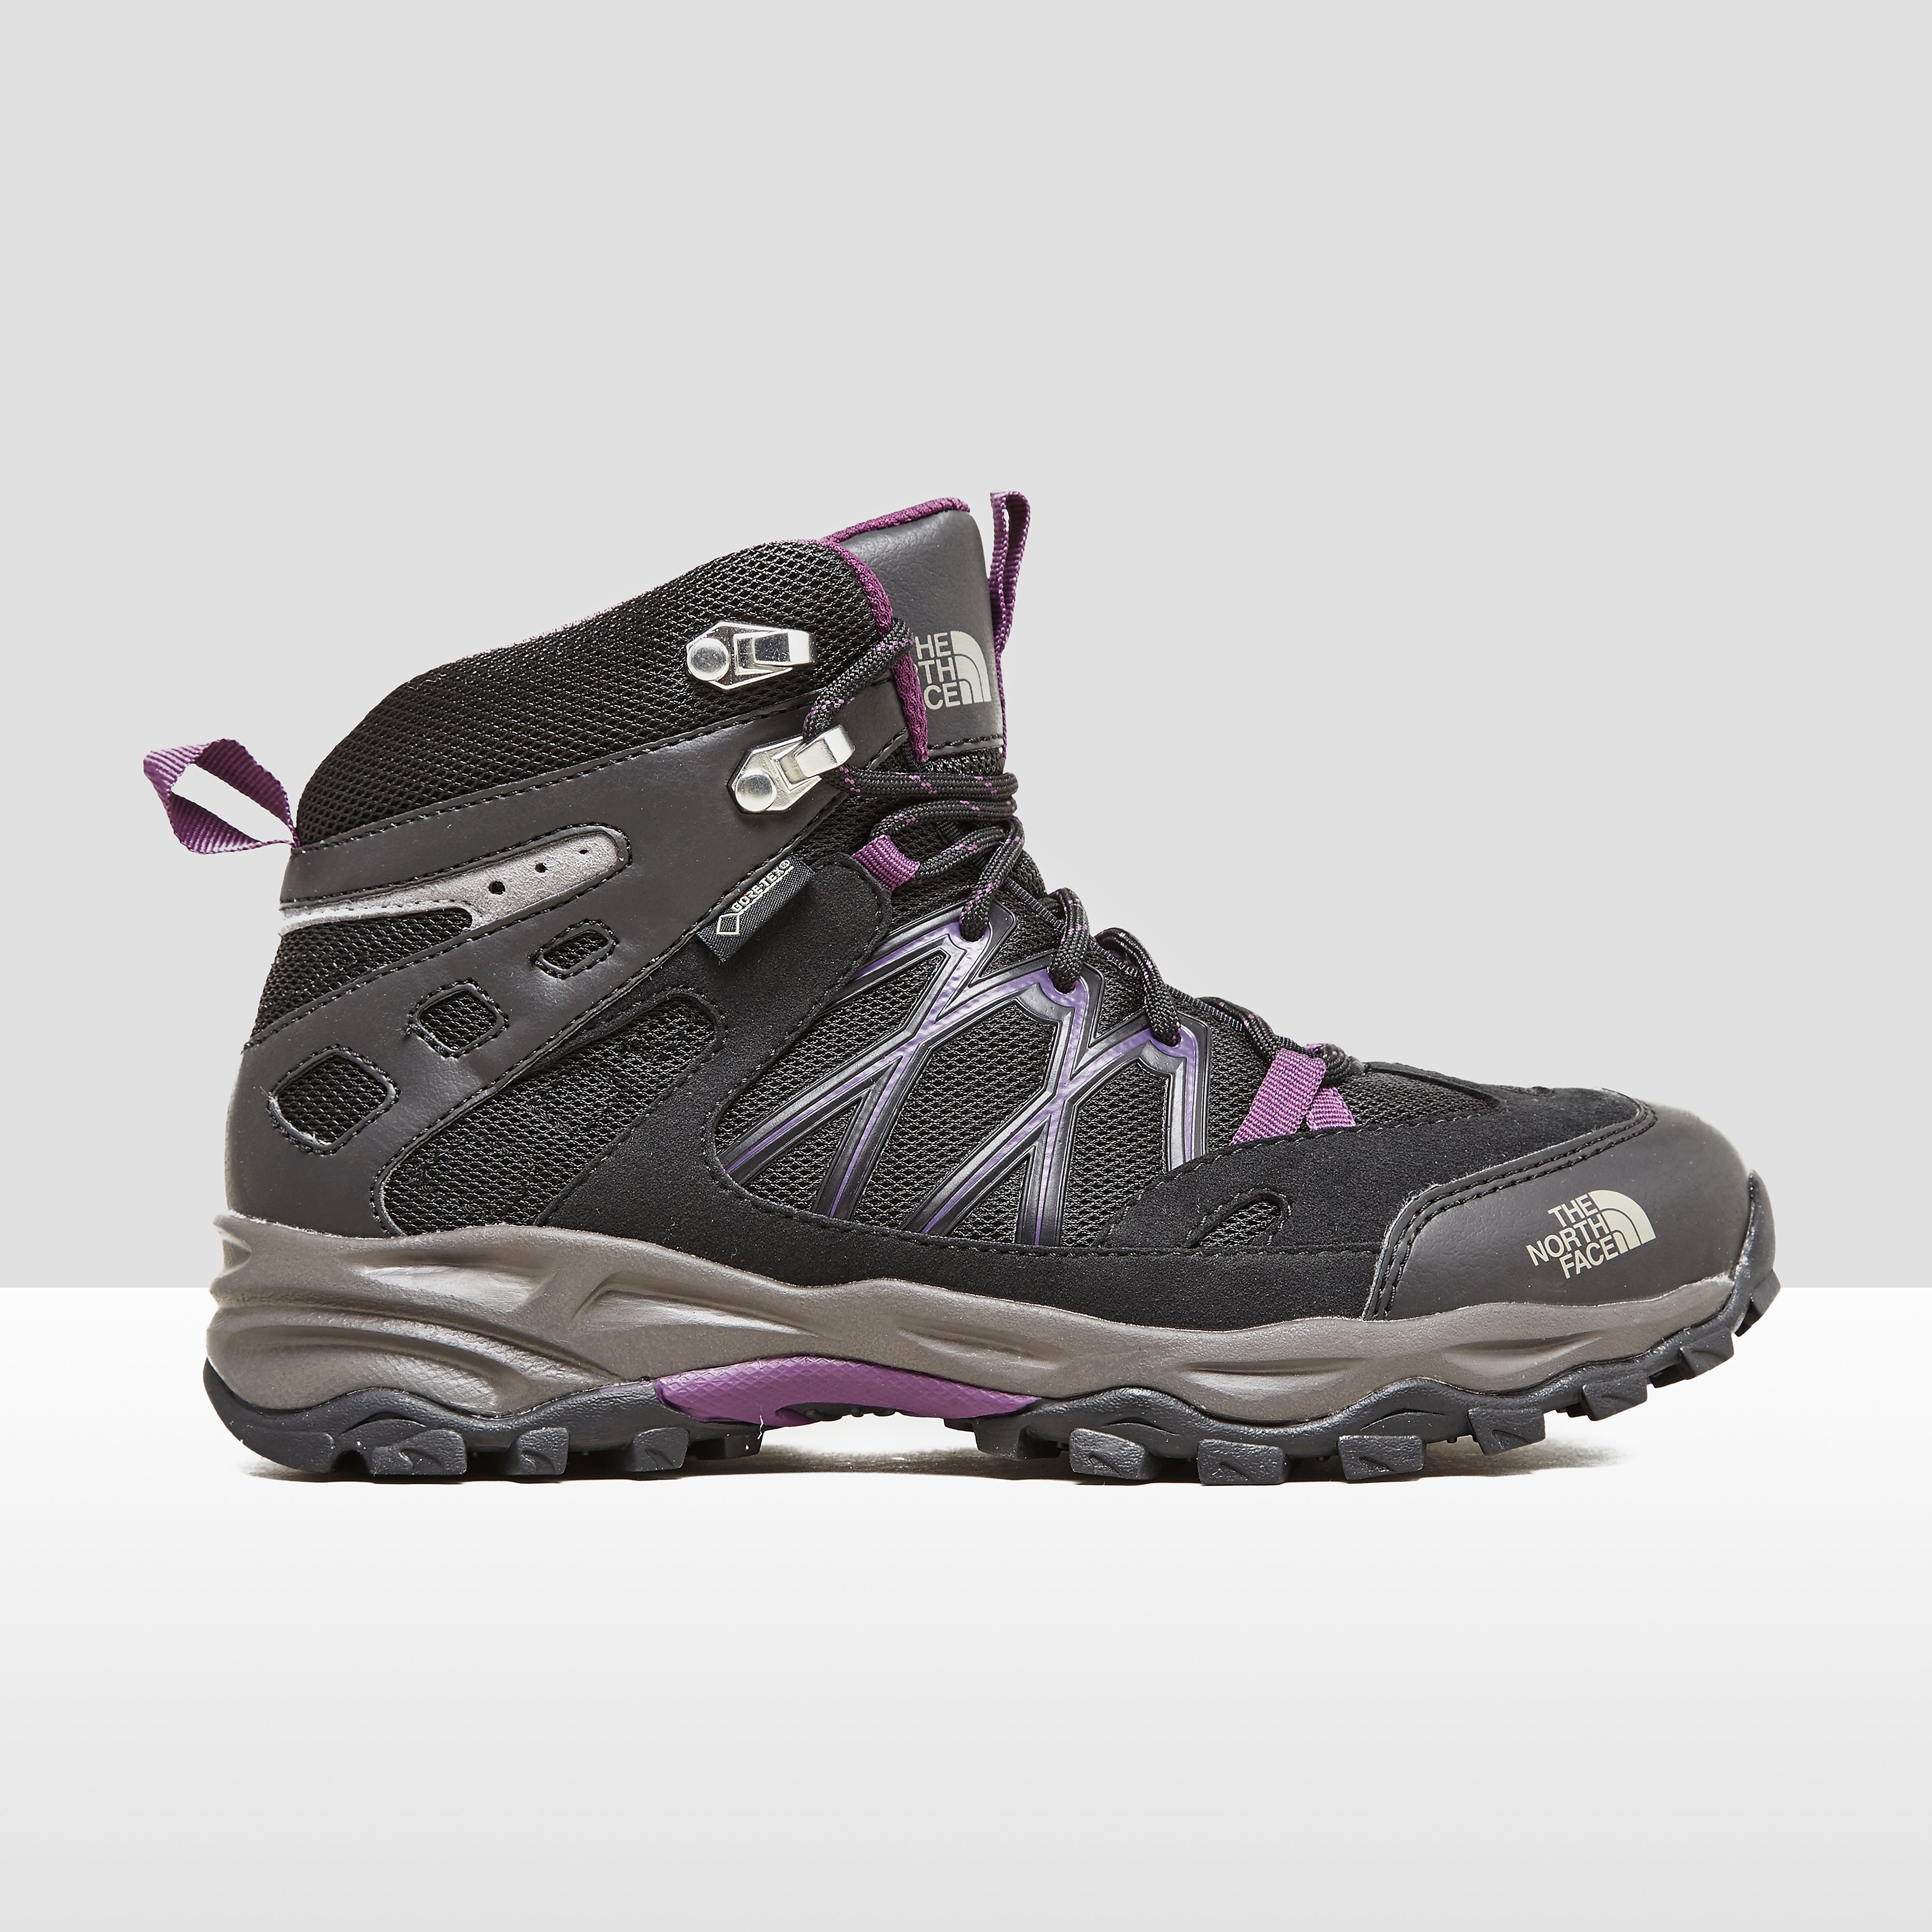 The North Face Terra Mid GTX Women's Walking Boots